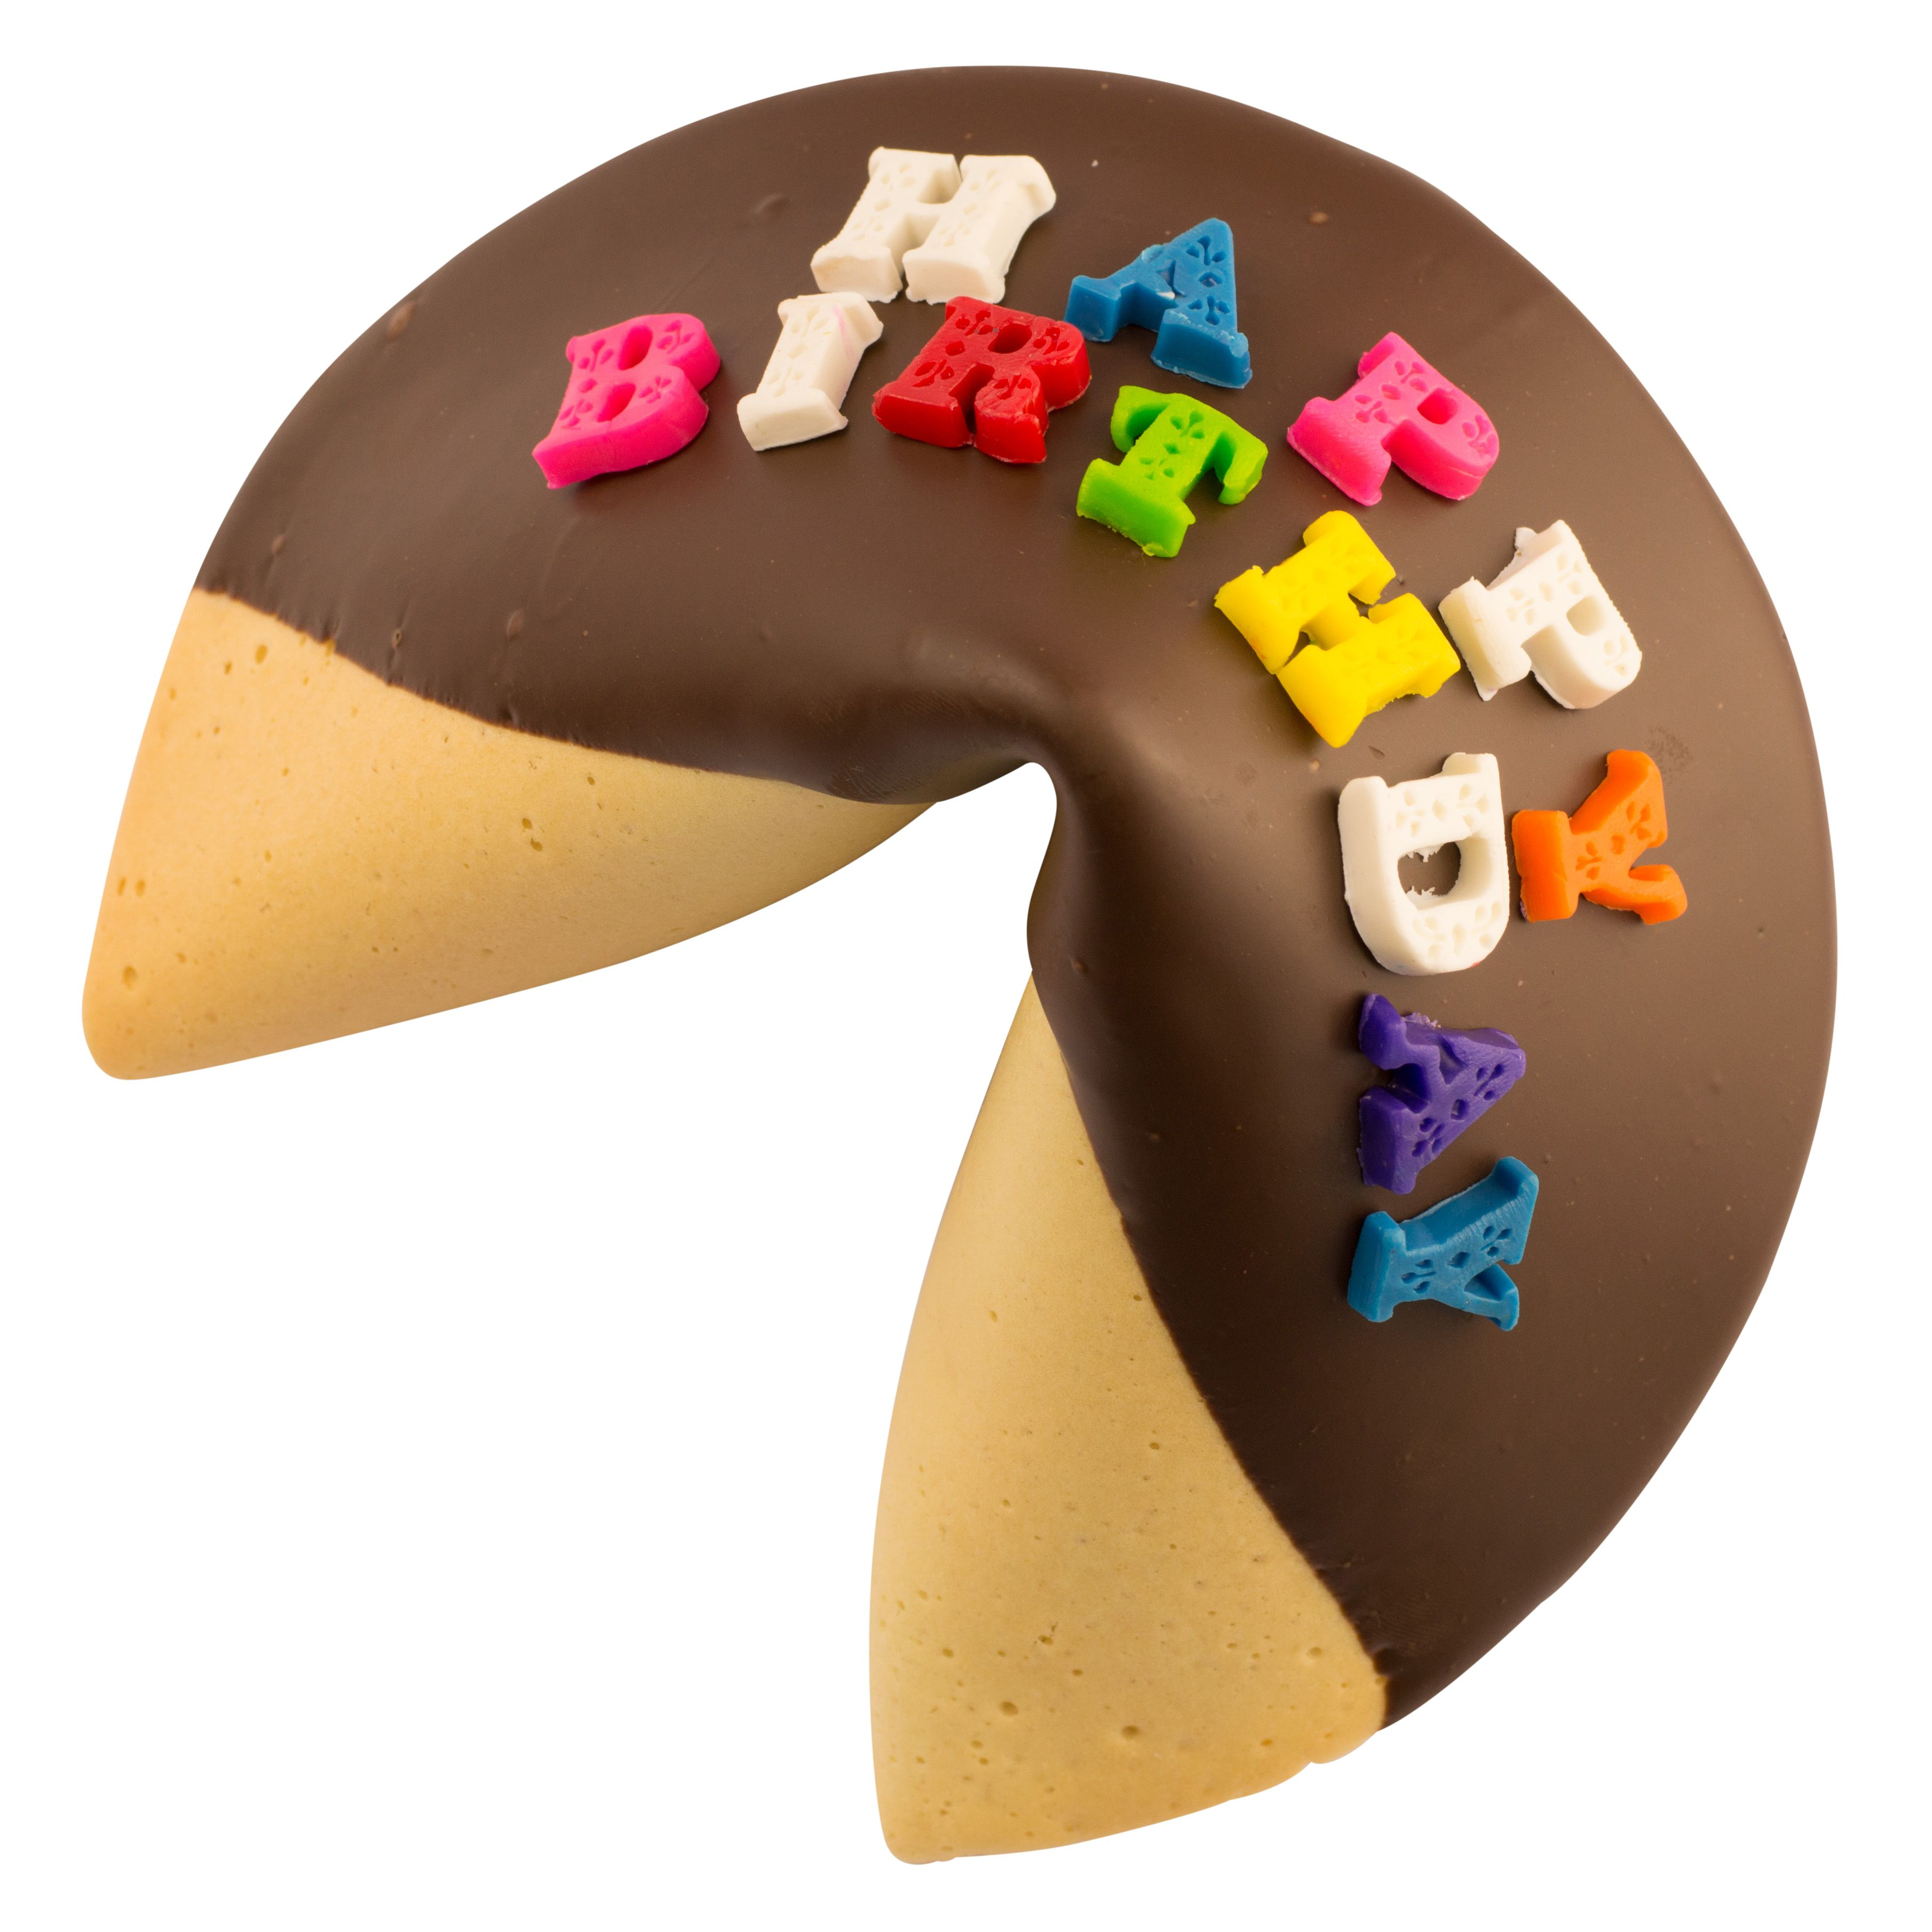 Giant happy birthday fortune cookie with edible lettering